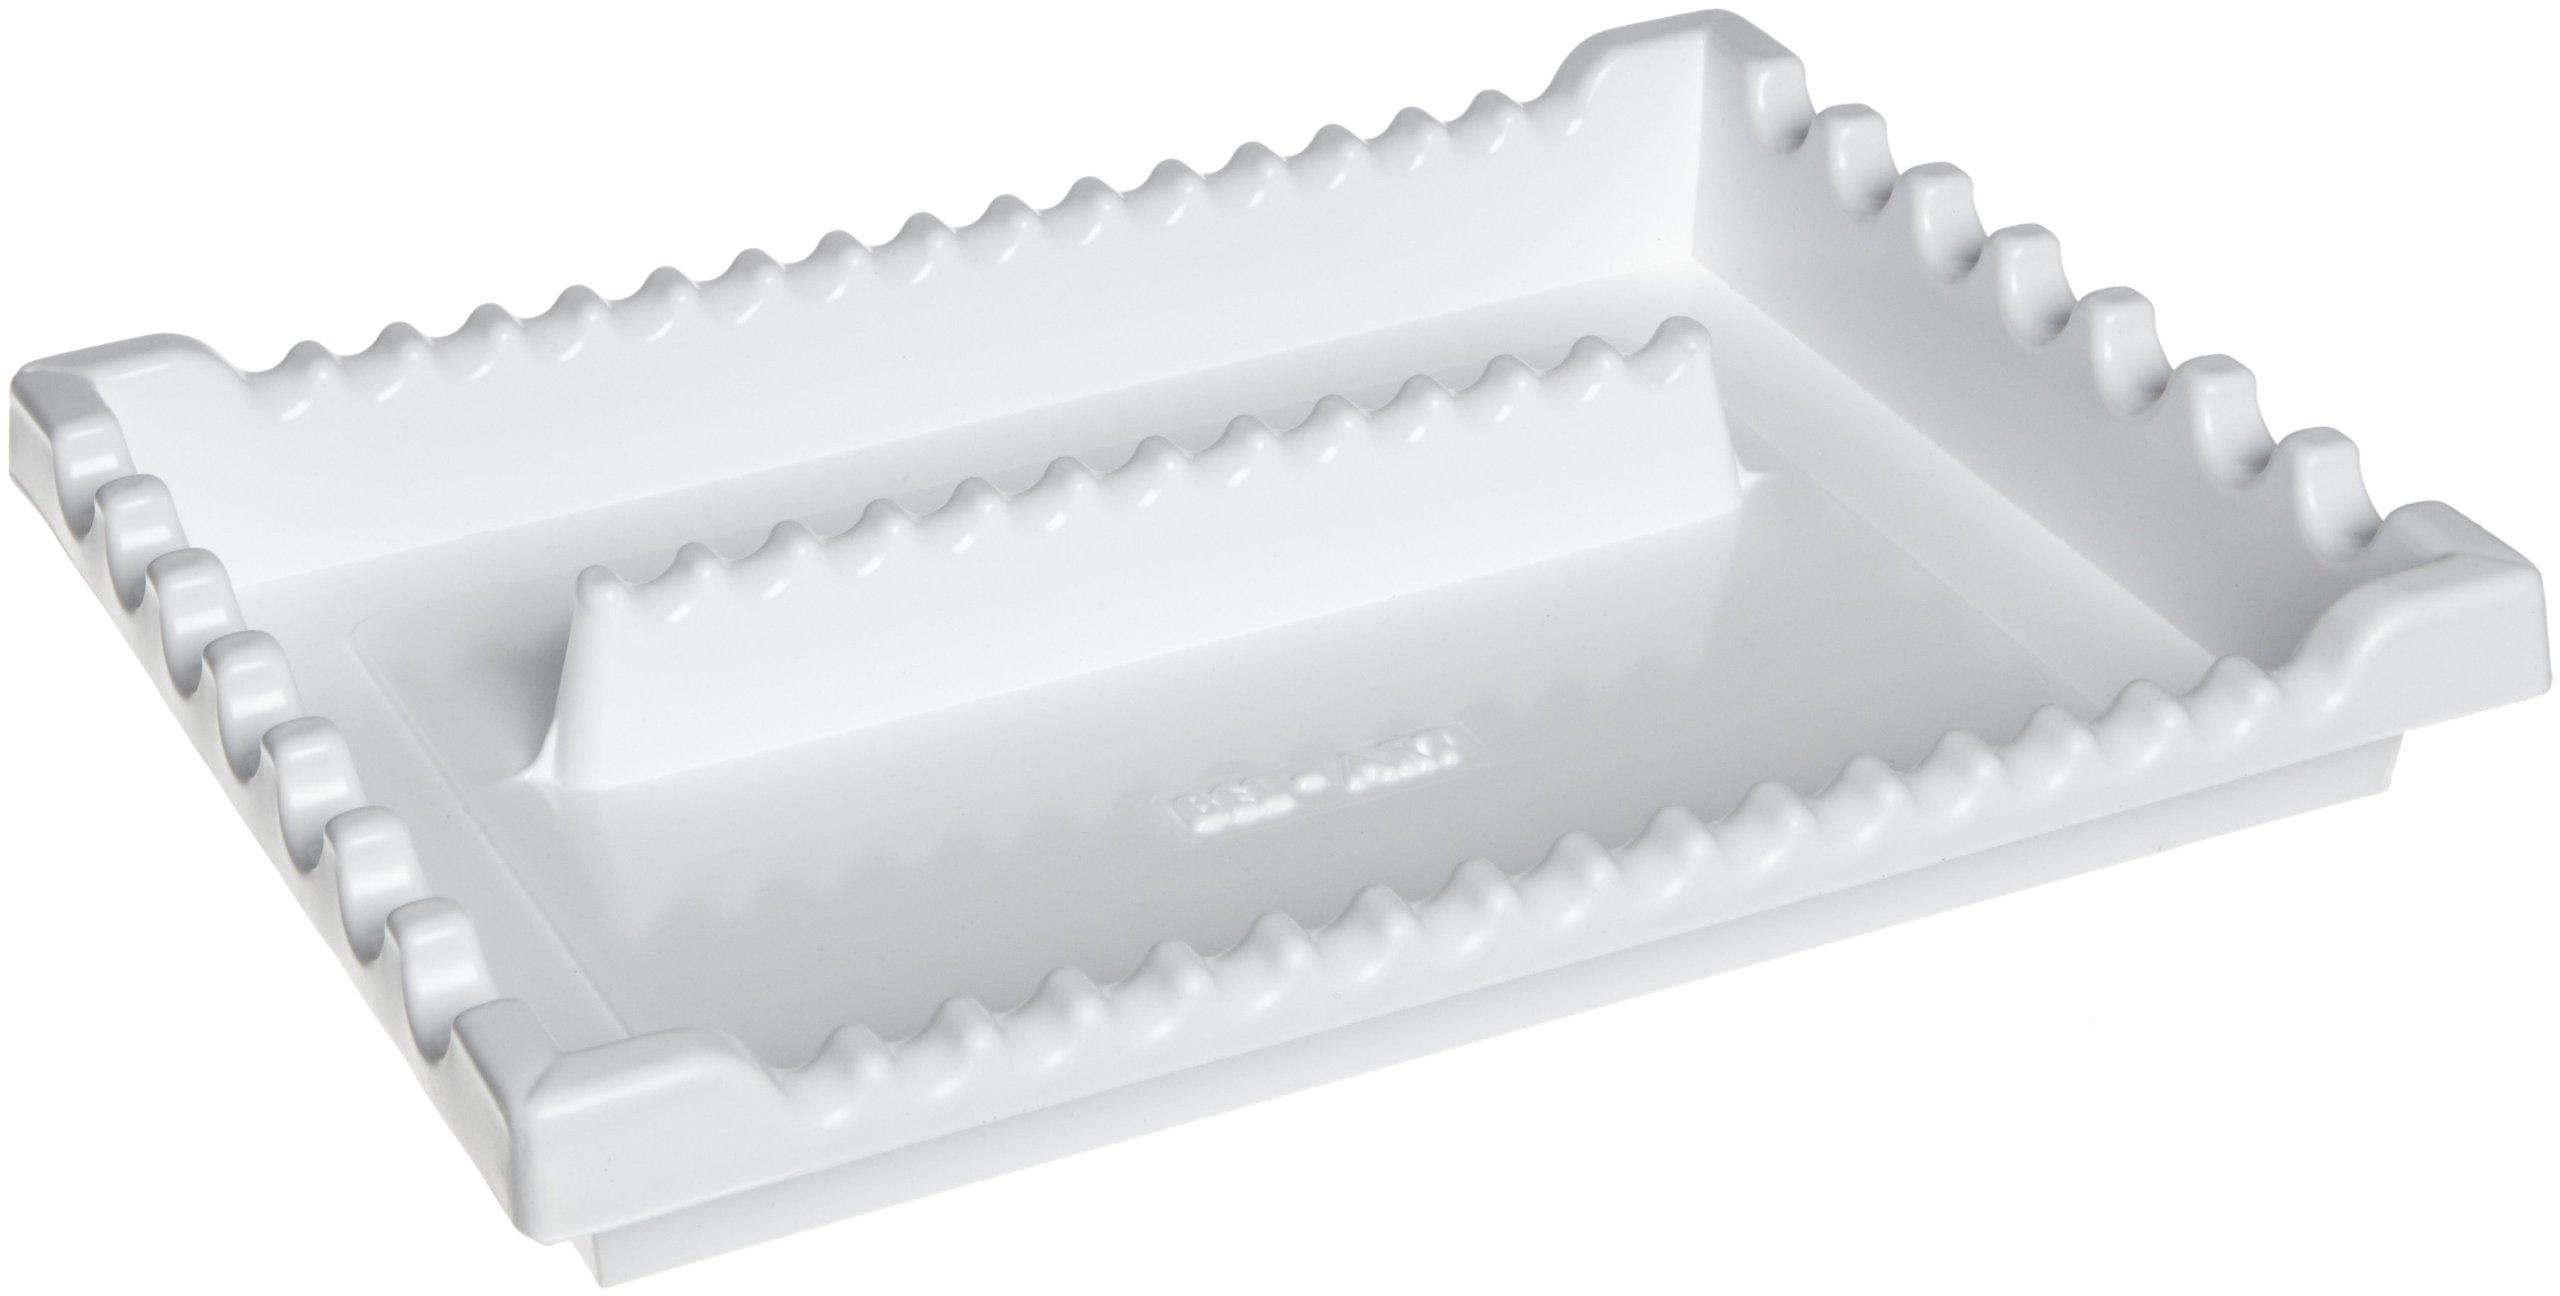 Bel-Art Pipette Tray Rack; 7-16 Places, 11¹⁄₄ x 8¹⁄₂ x 1⅛ in., Polystyrene  (F18940-0000)